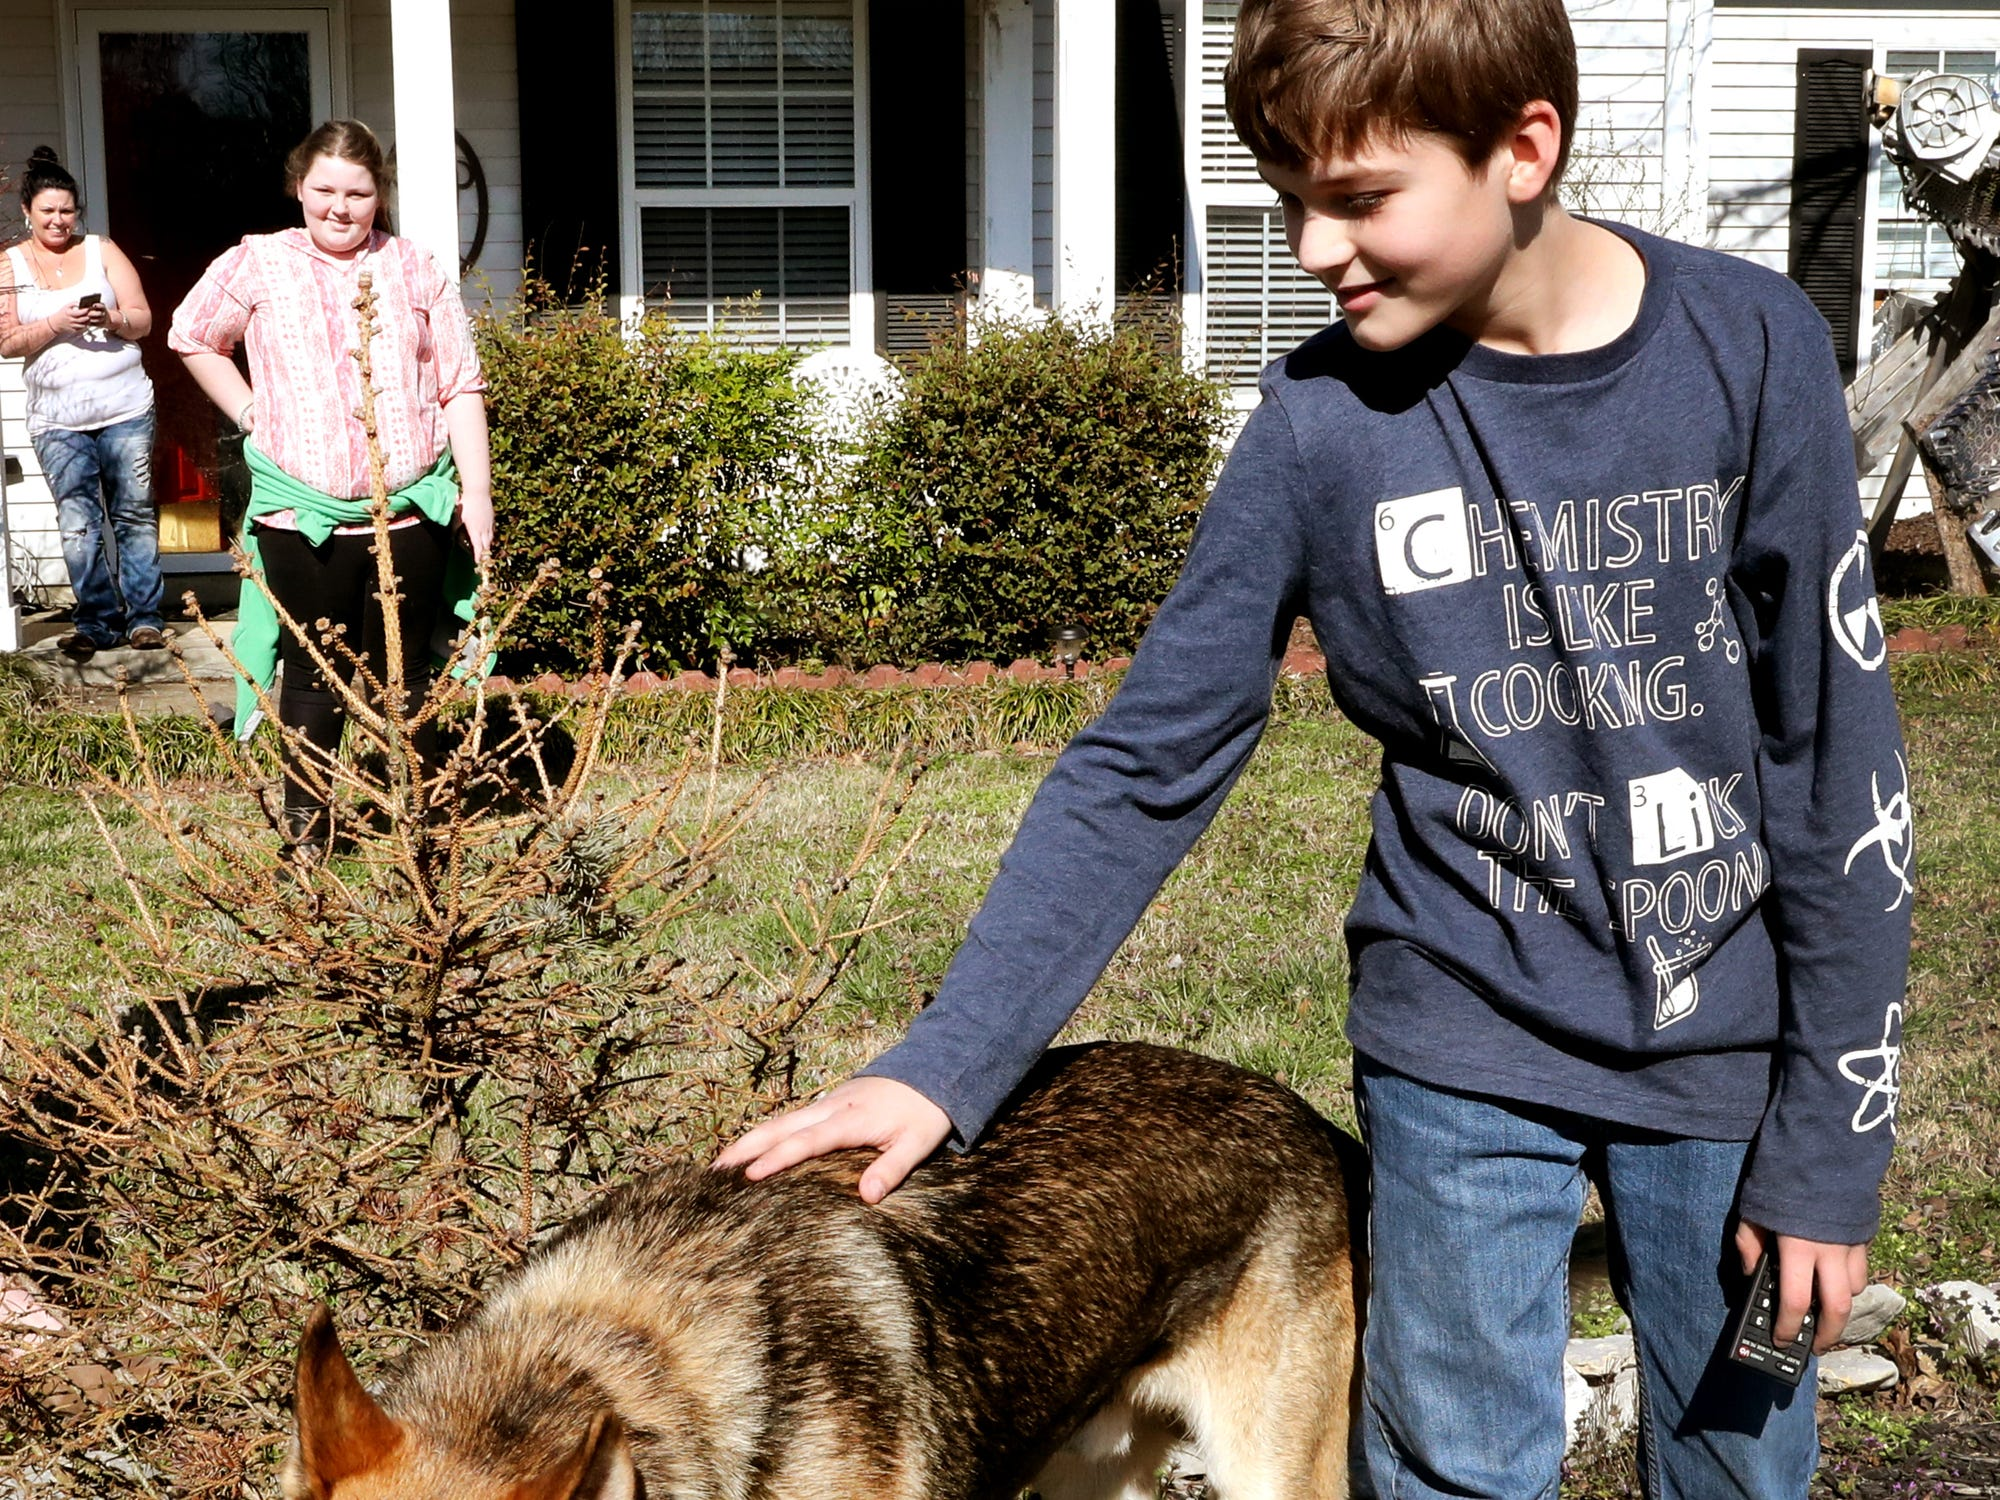 Justin White, 10, pets on his dog, Goblin, on Tuesday, after he was returned to the family's Christiana home on March 19, 2019, after officially being reported missing since March 10.